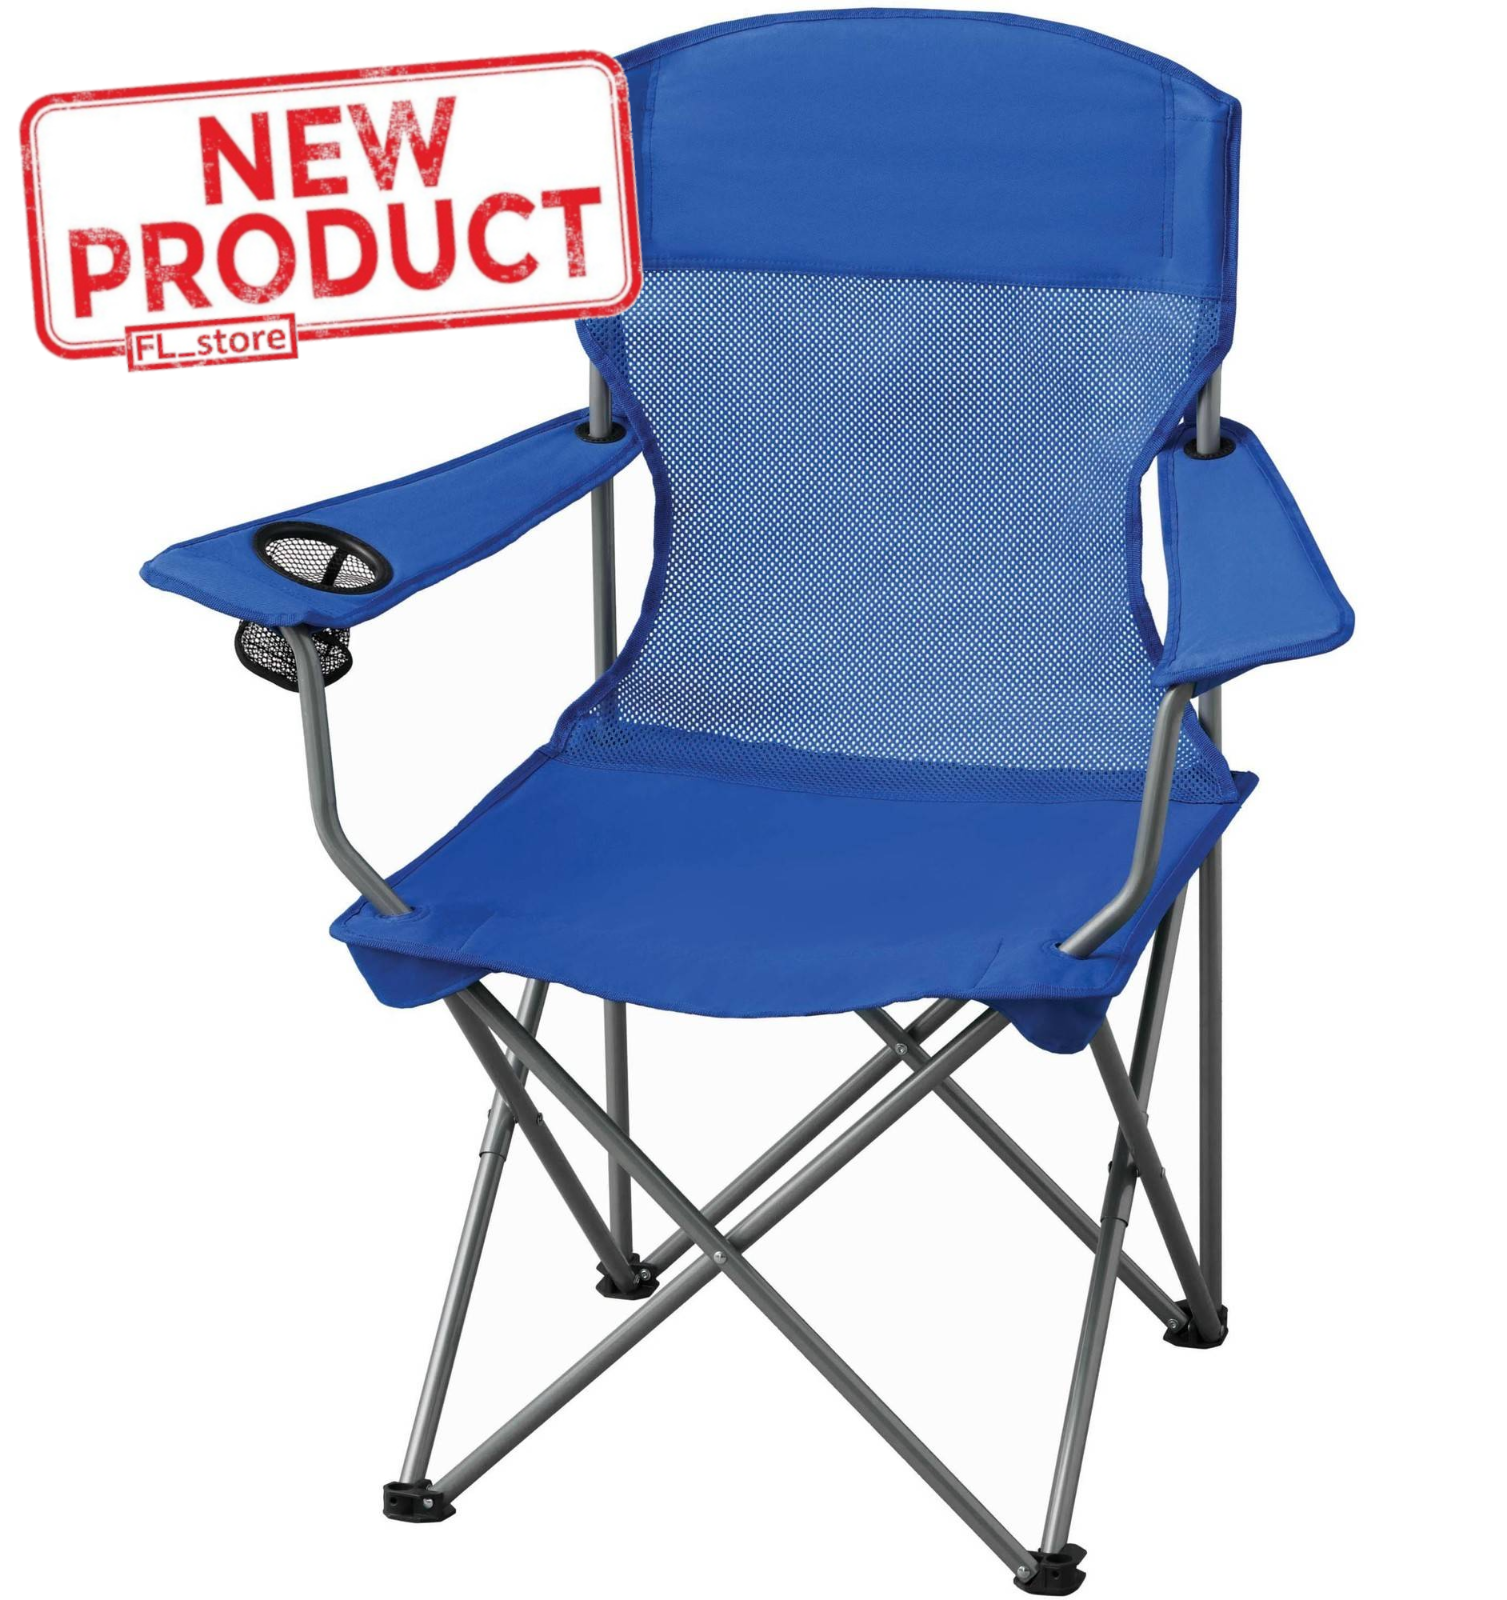 Folding Camp Chair Cup Holder Carrying Bag Outdoor Camping Events Durable Blue